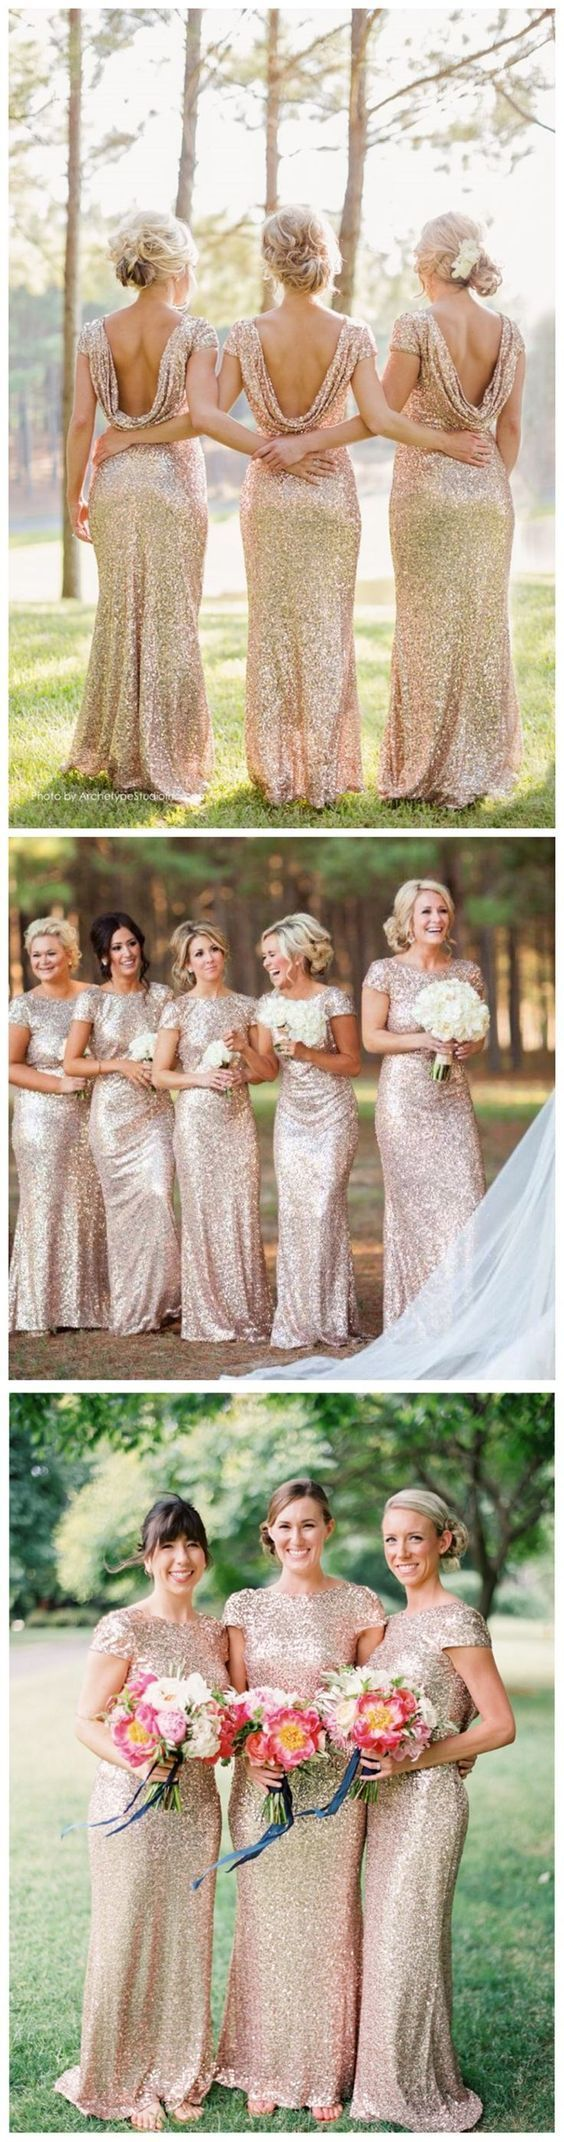 Sequin bridesmaid dress, short sleeve bridesmaid dresses, gold bridesmaid dresses, long bridesmaid dresses, cheap bridesmaid dresses